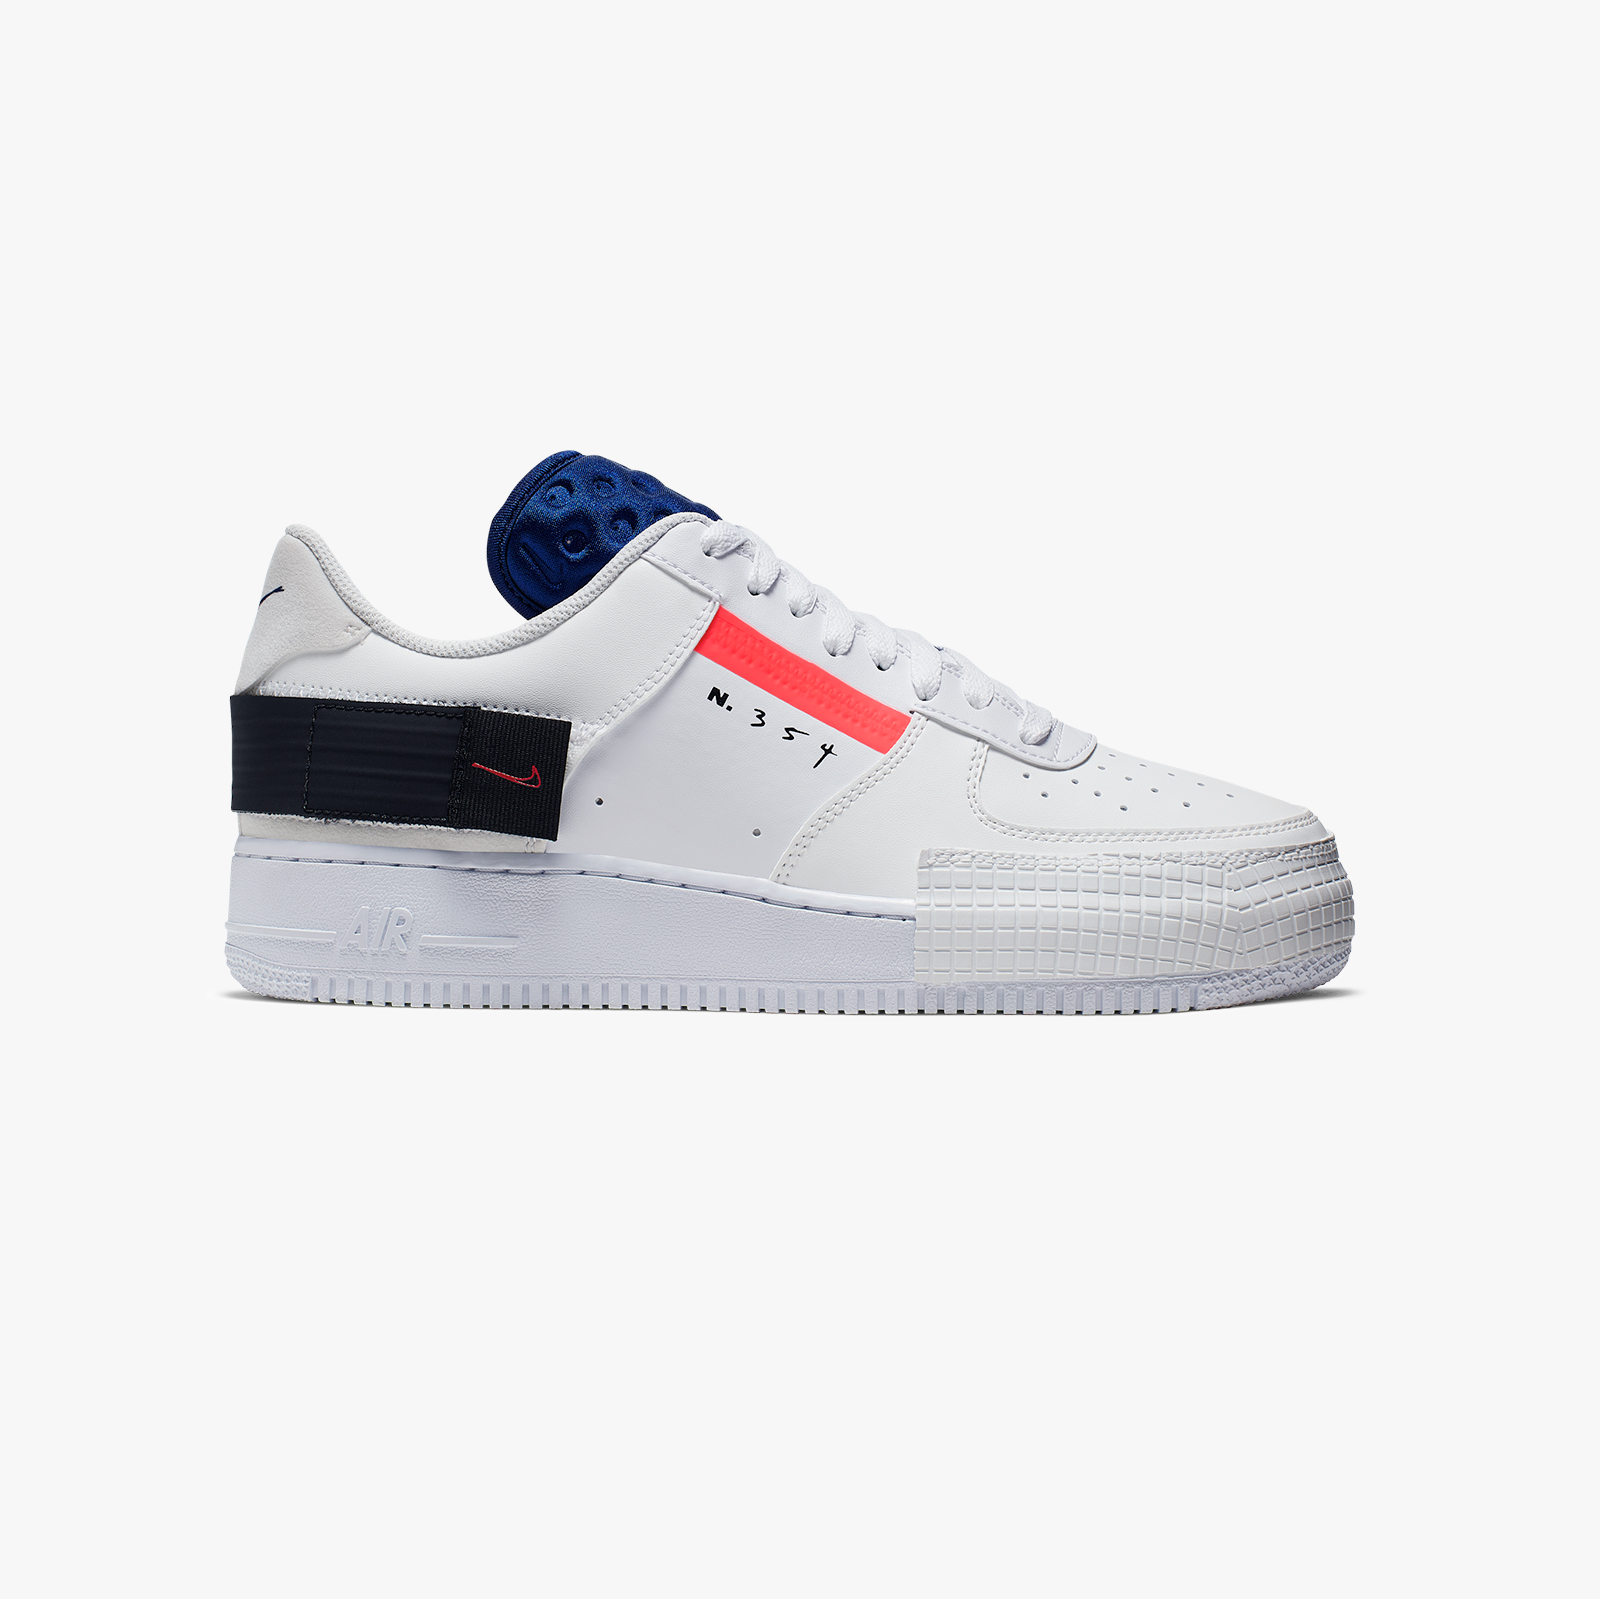 CI0054 100 Nike Air Force 1 Type 2